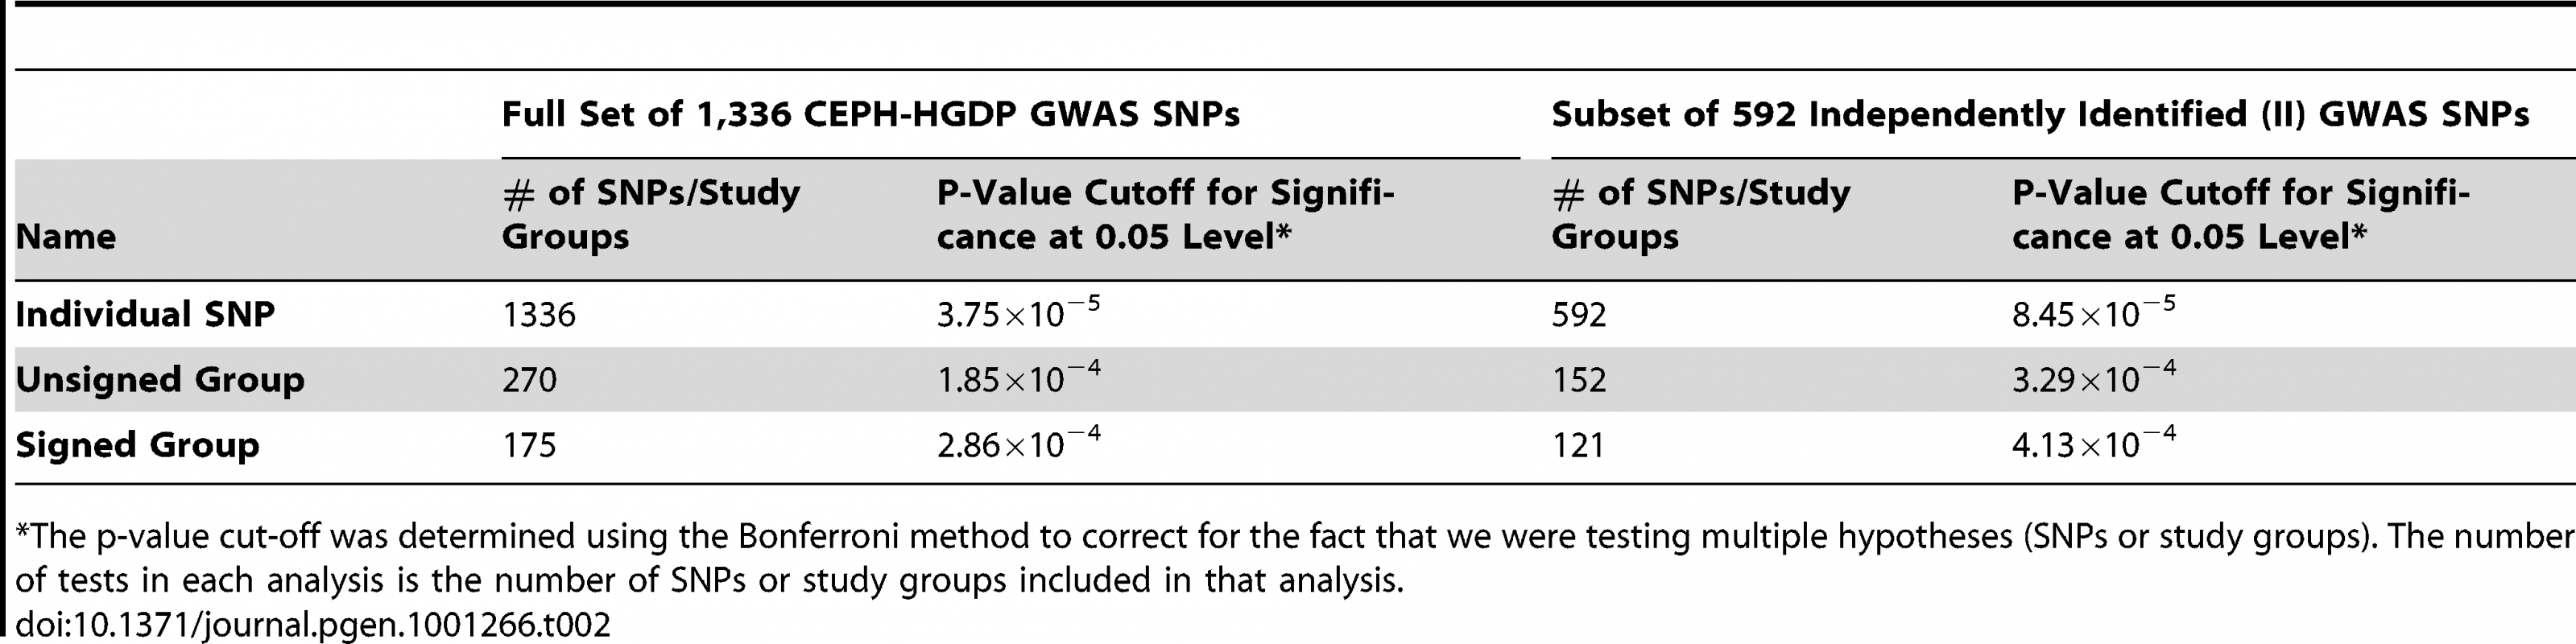 Number of SNPs/study groups tested in each analysis.